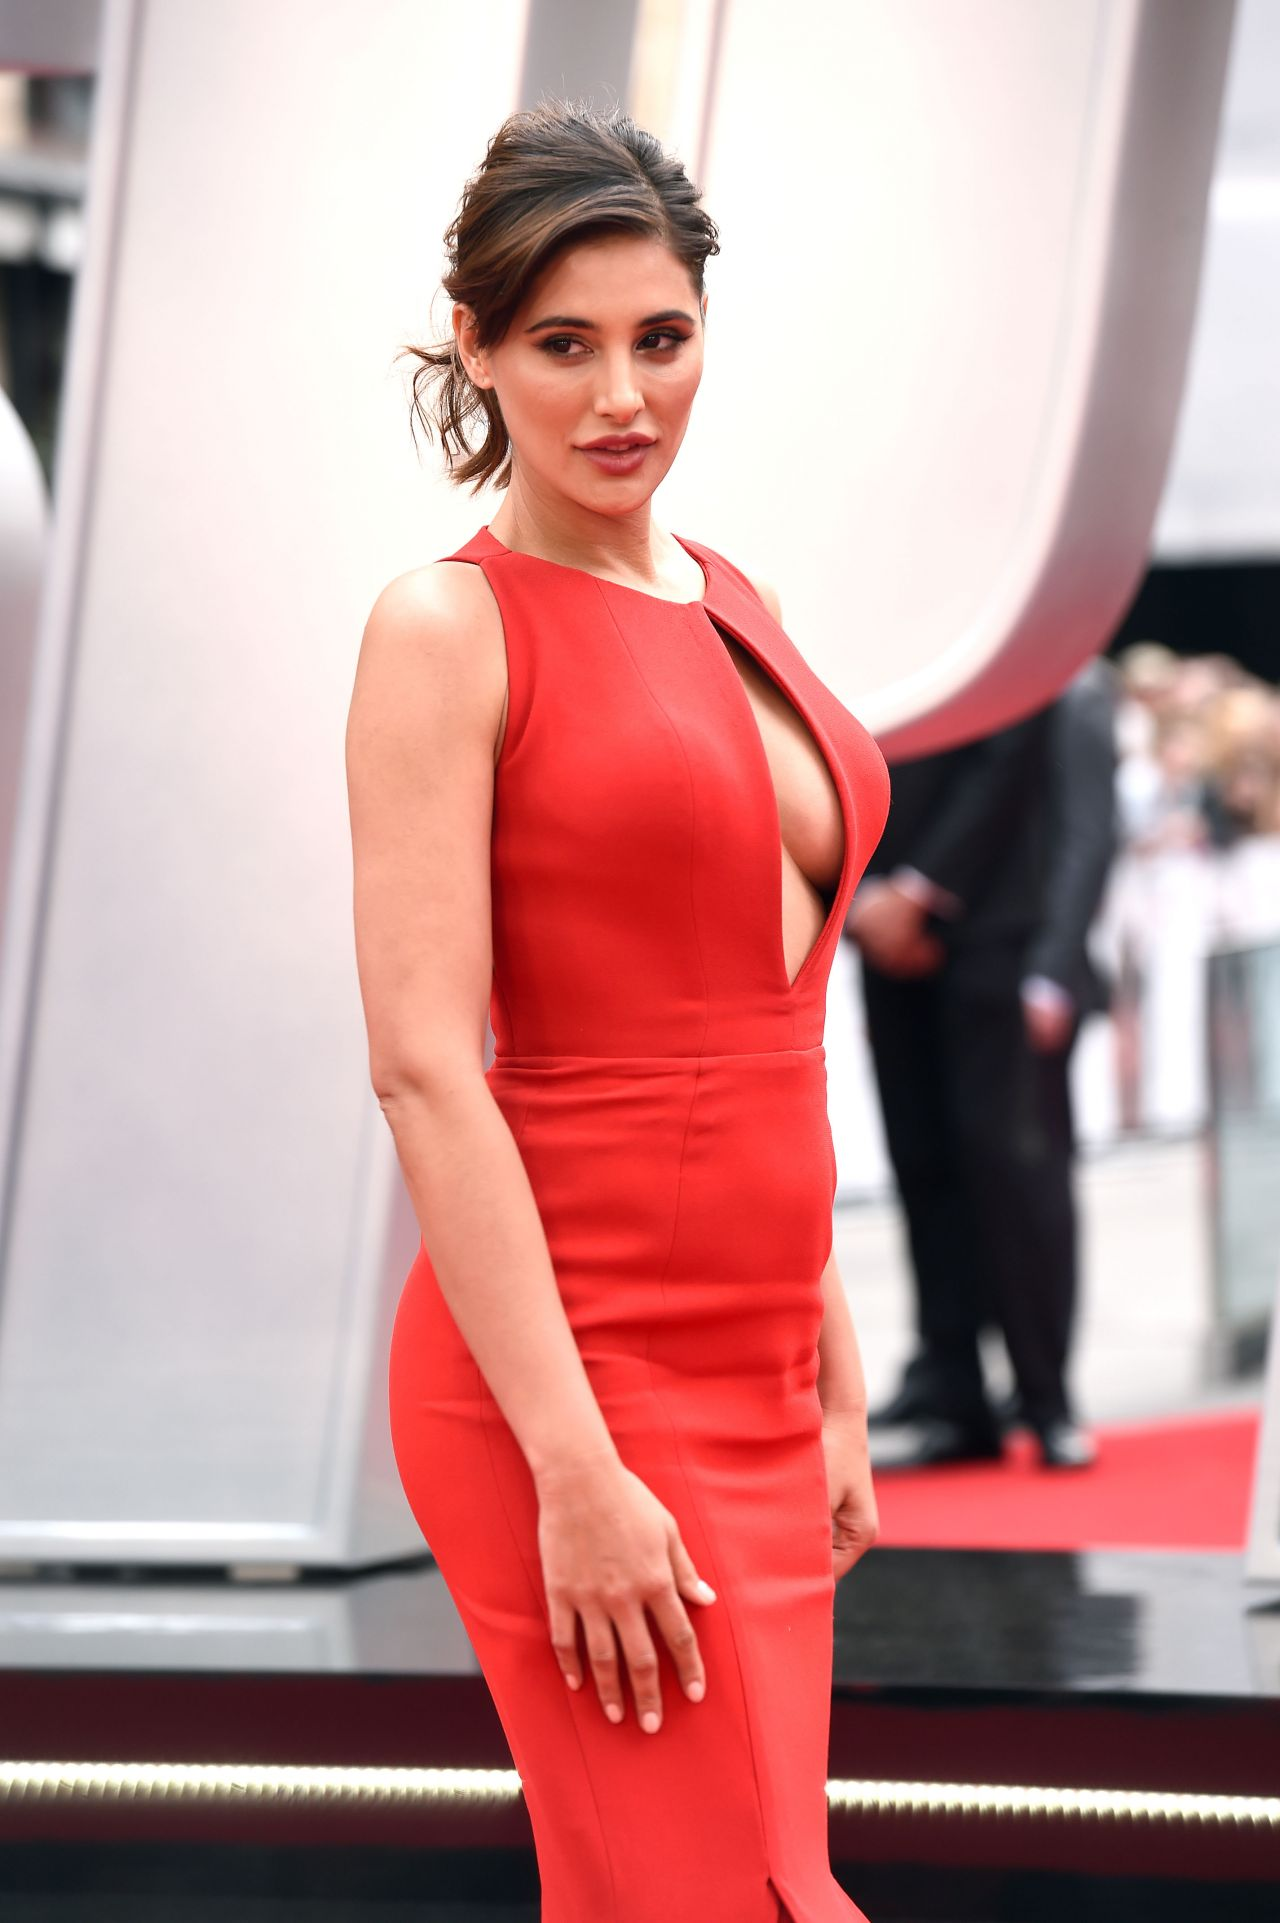 Cute Small Girl Wallpapers For Facebook Nargis Fakhri Spy Premiere In London